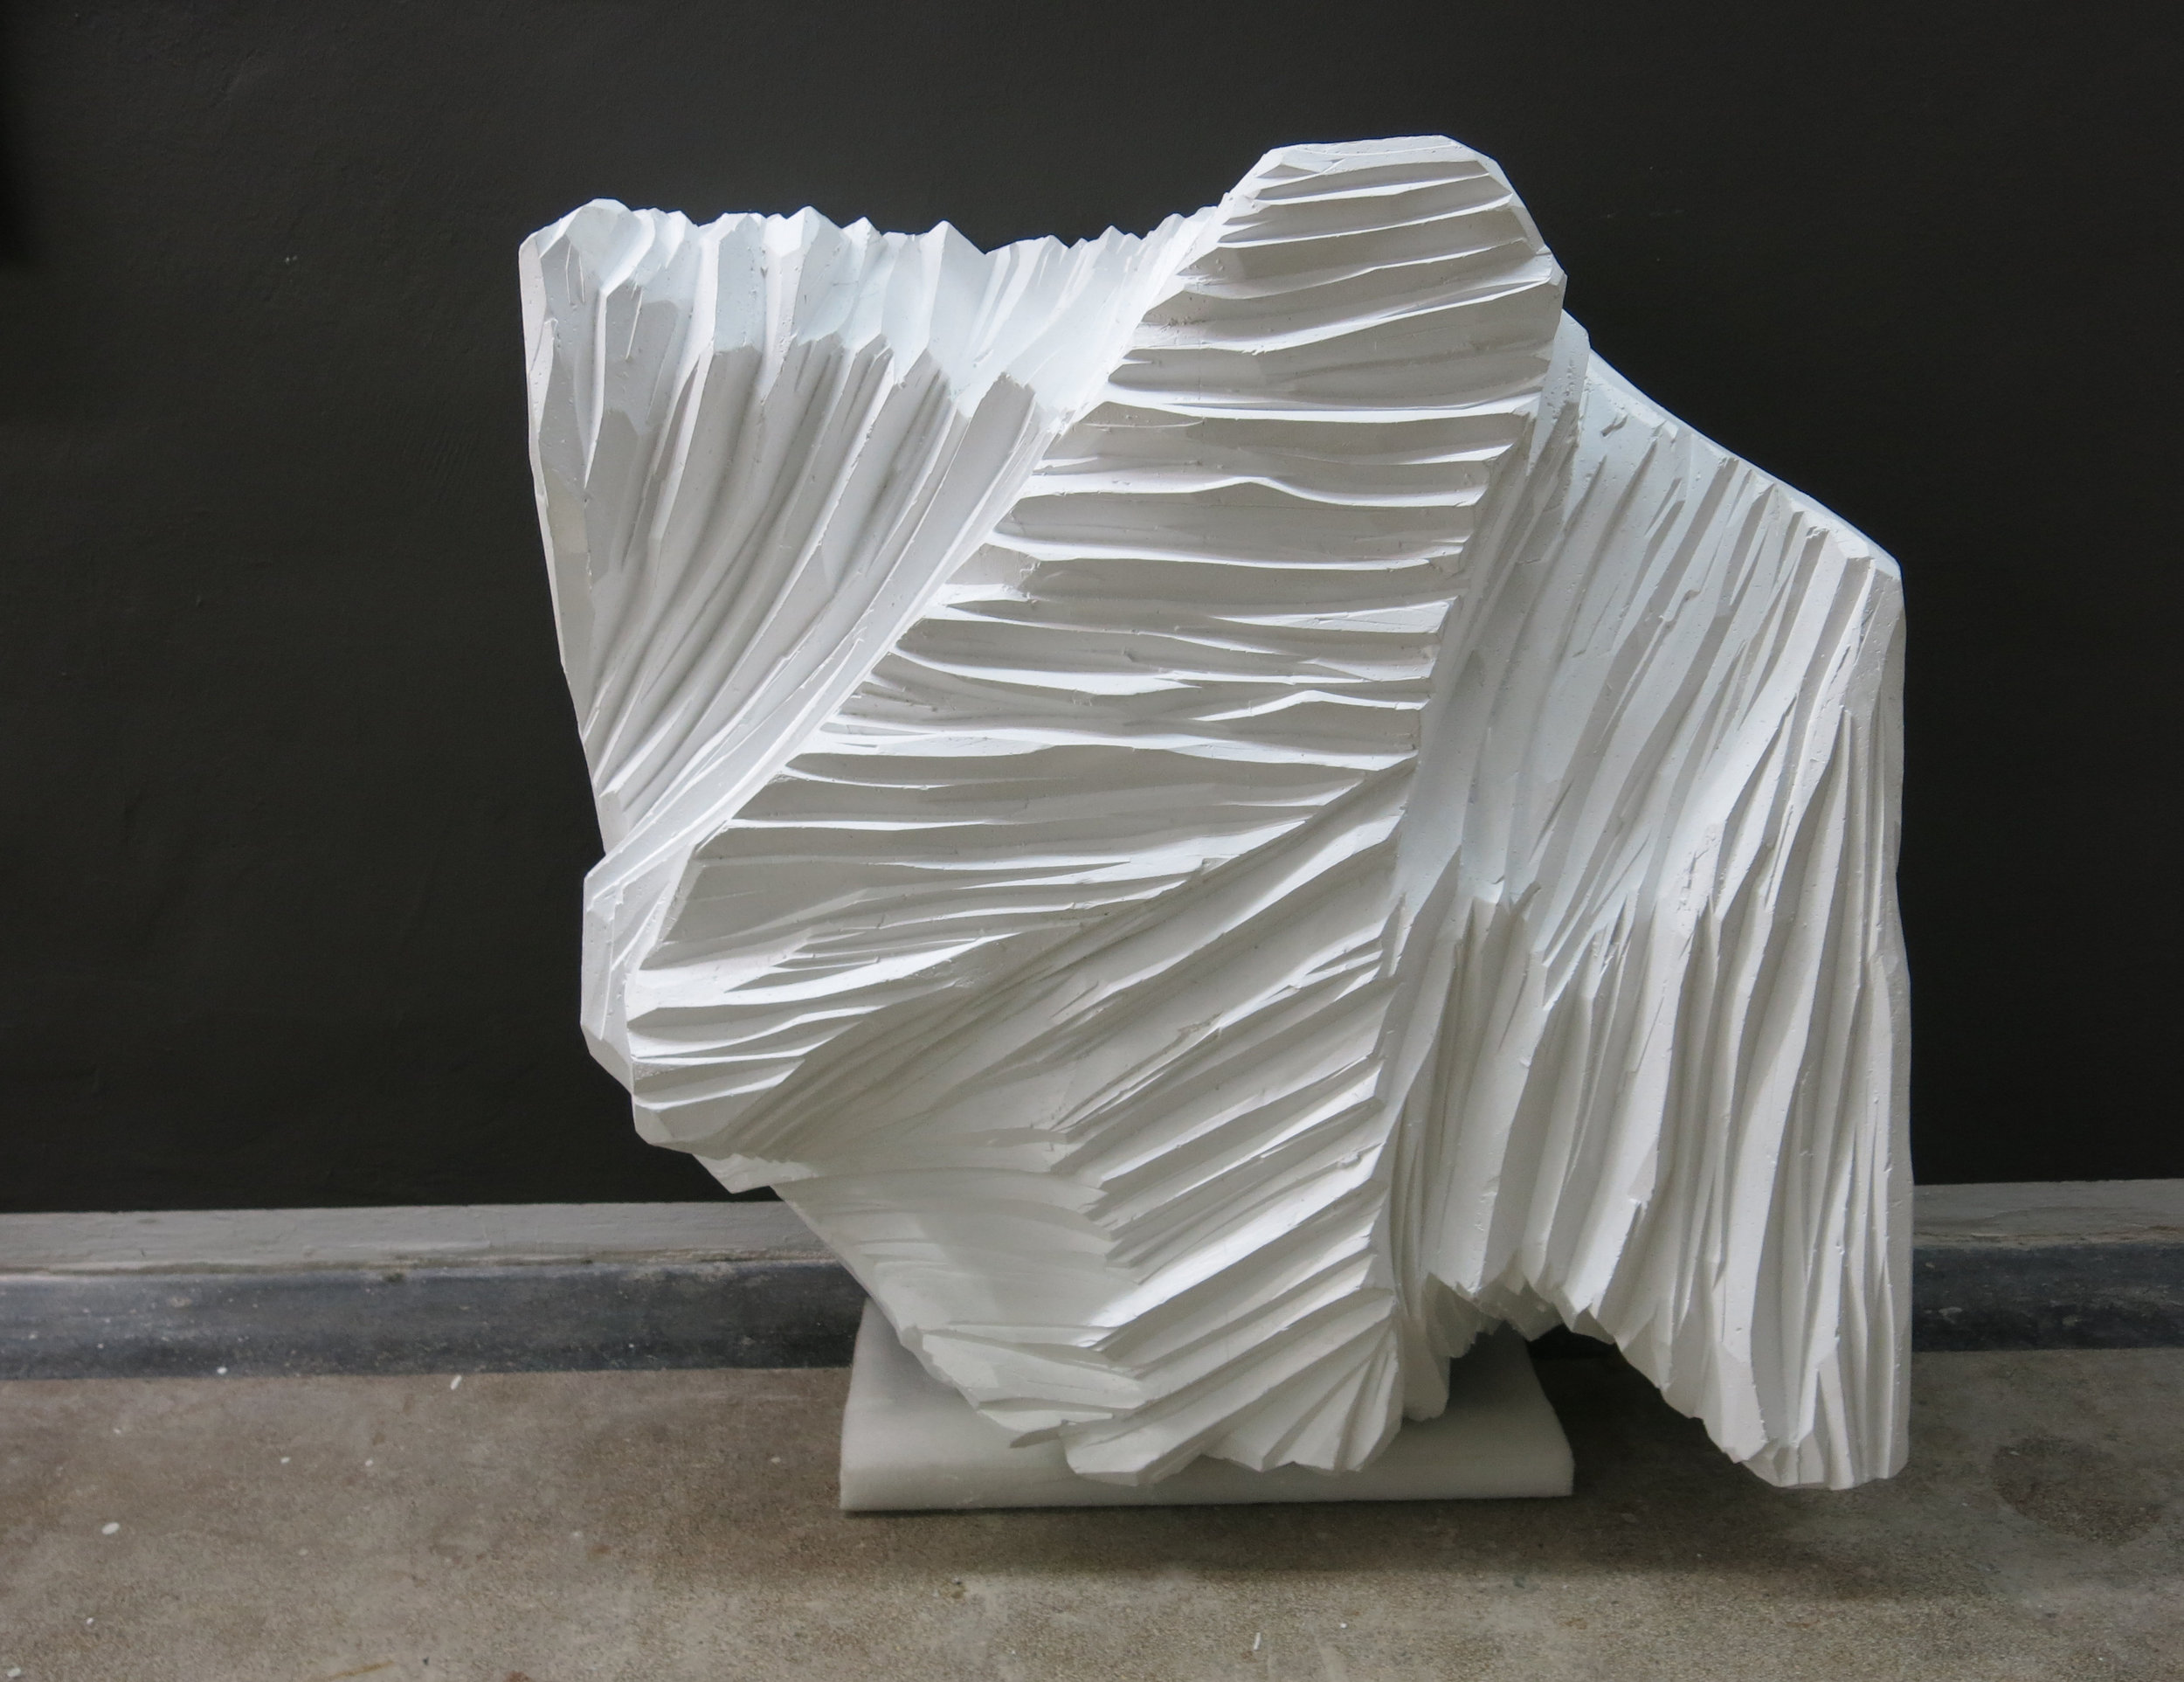 web222-sculpture-white-giselastiegler-in-art-studio-marion-friedmann-gallery.jpg